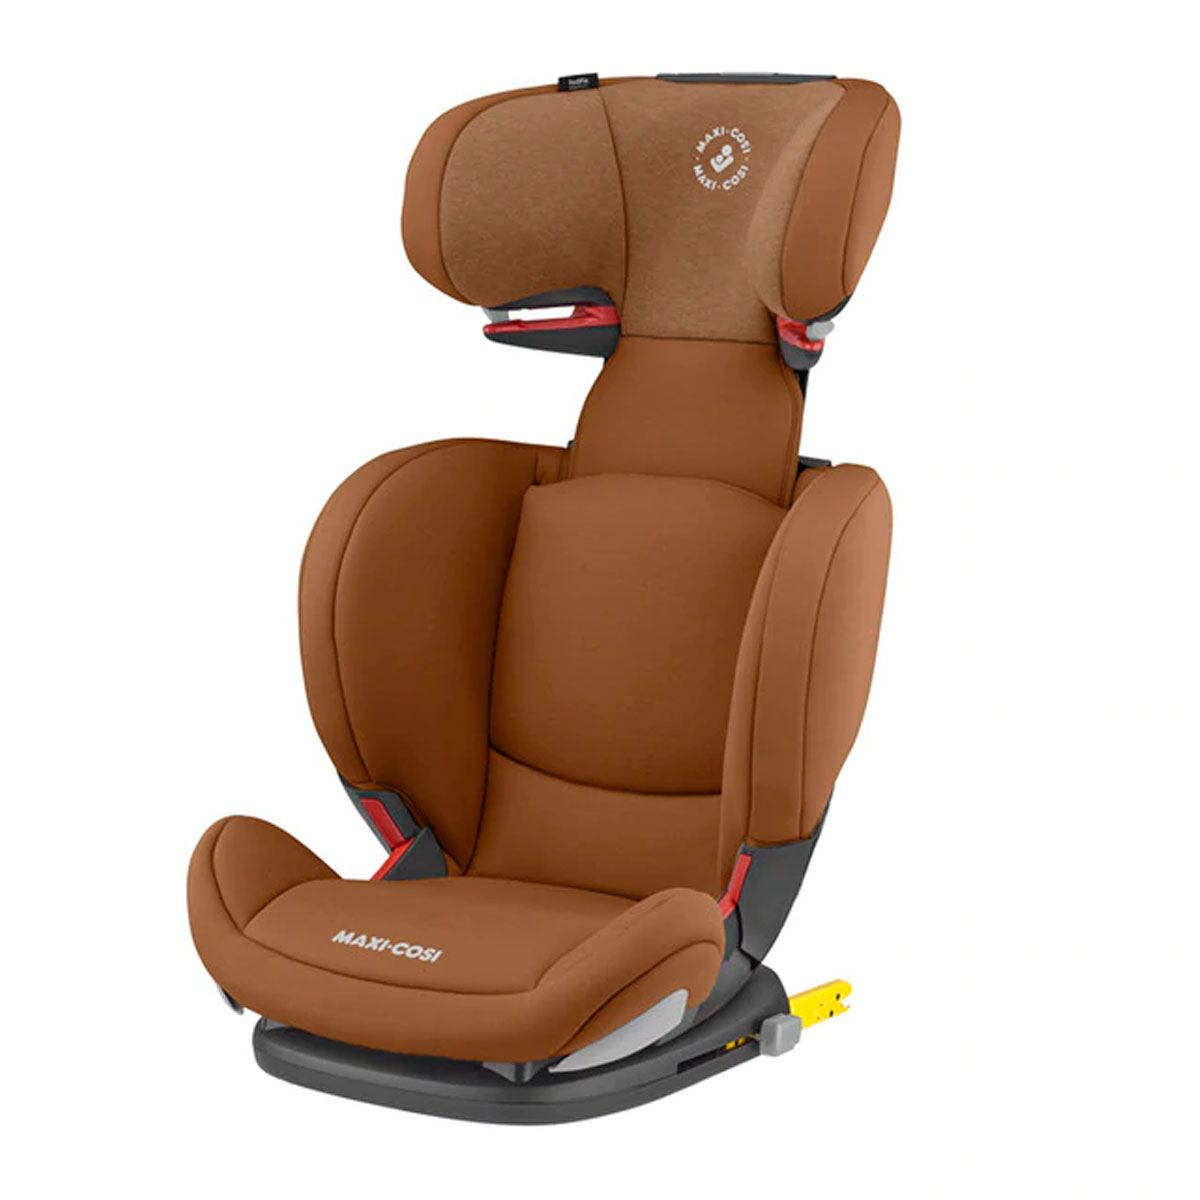 Rodifix air protect de Maxi cosi